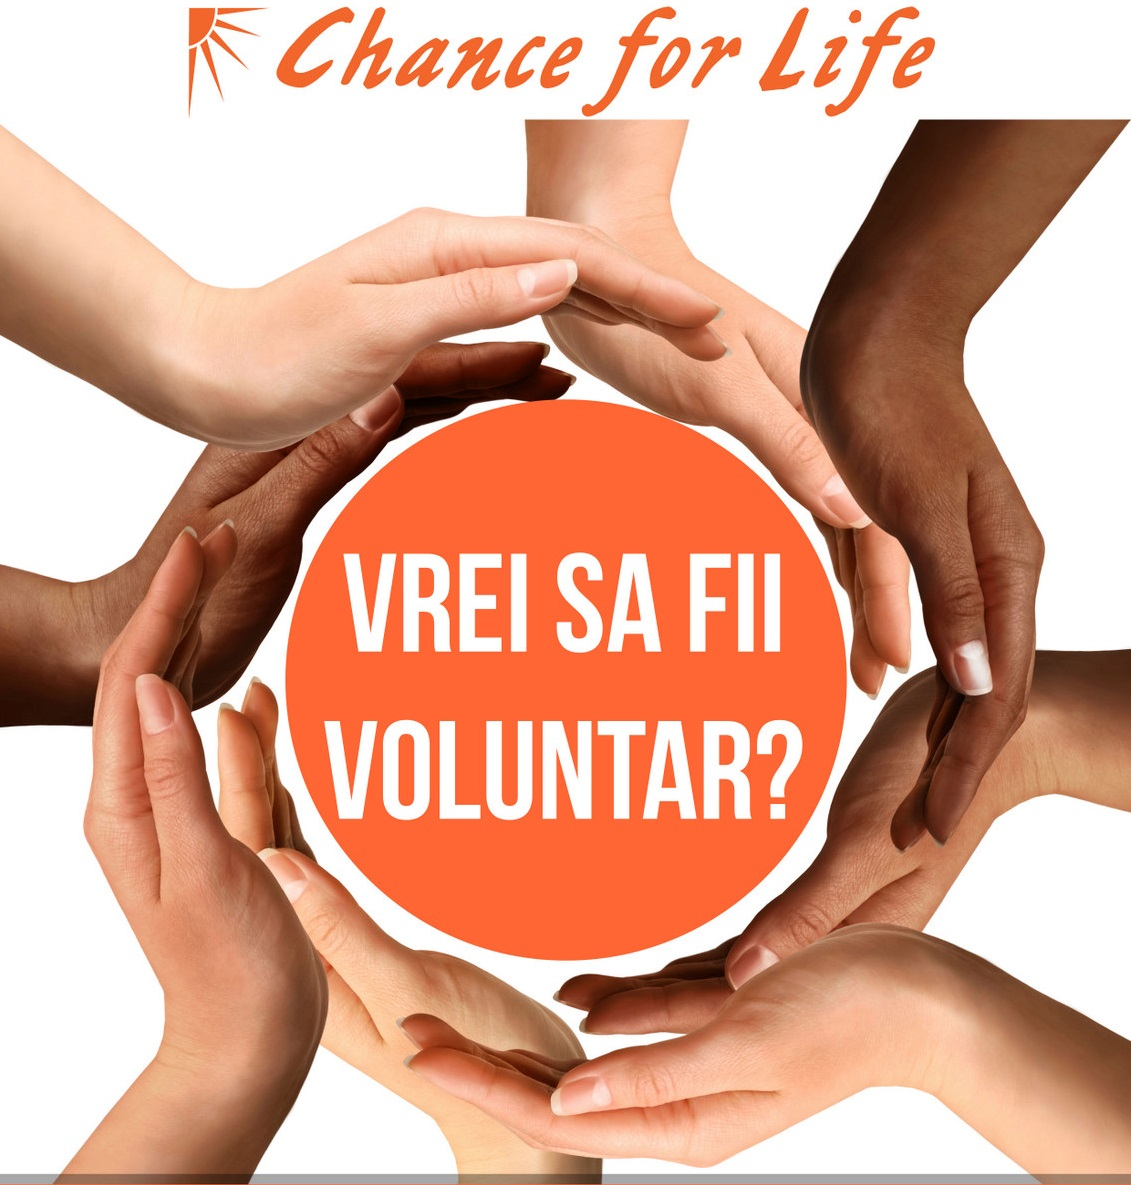 Fundația Chance for Life recrutează voluntari!